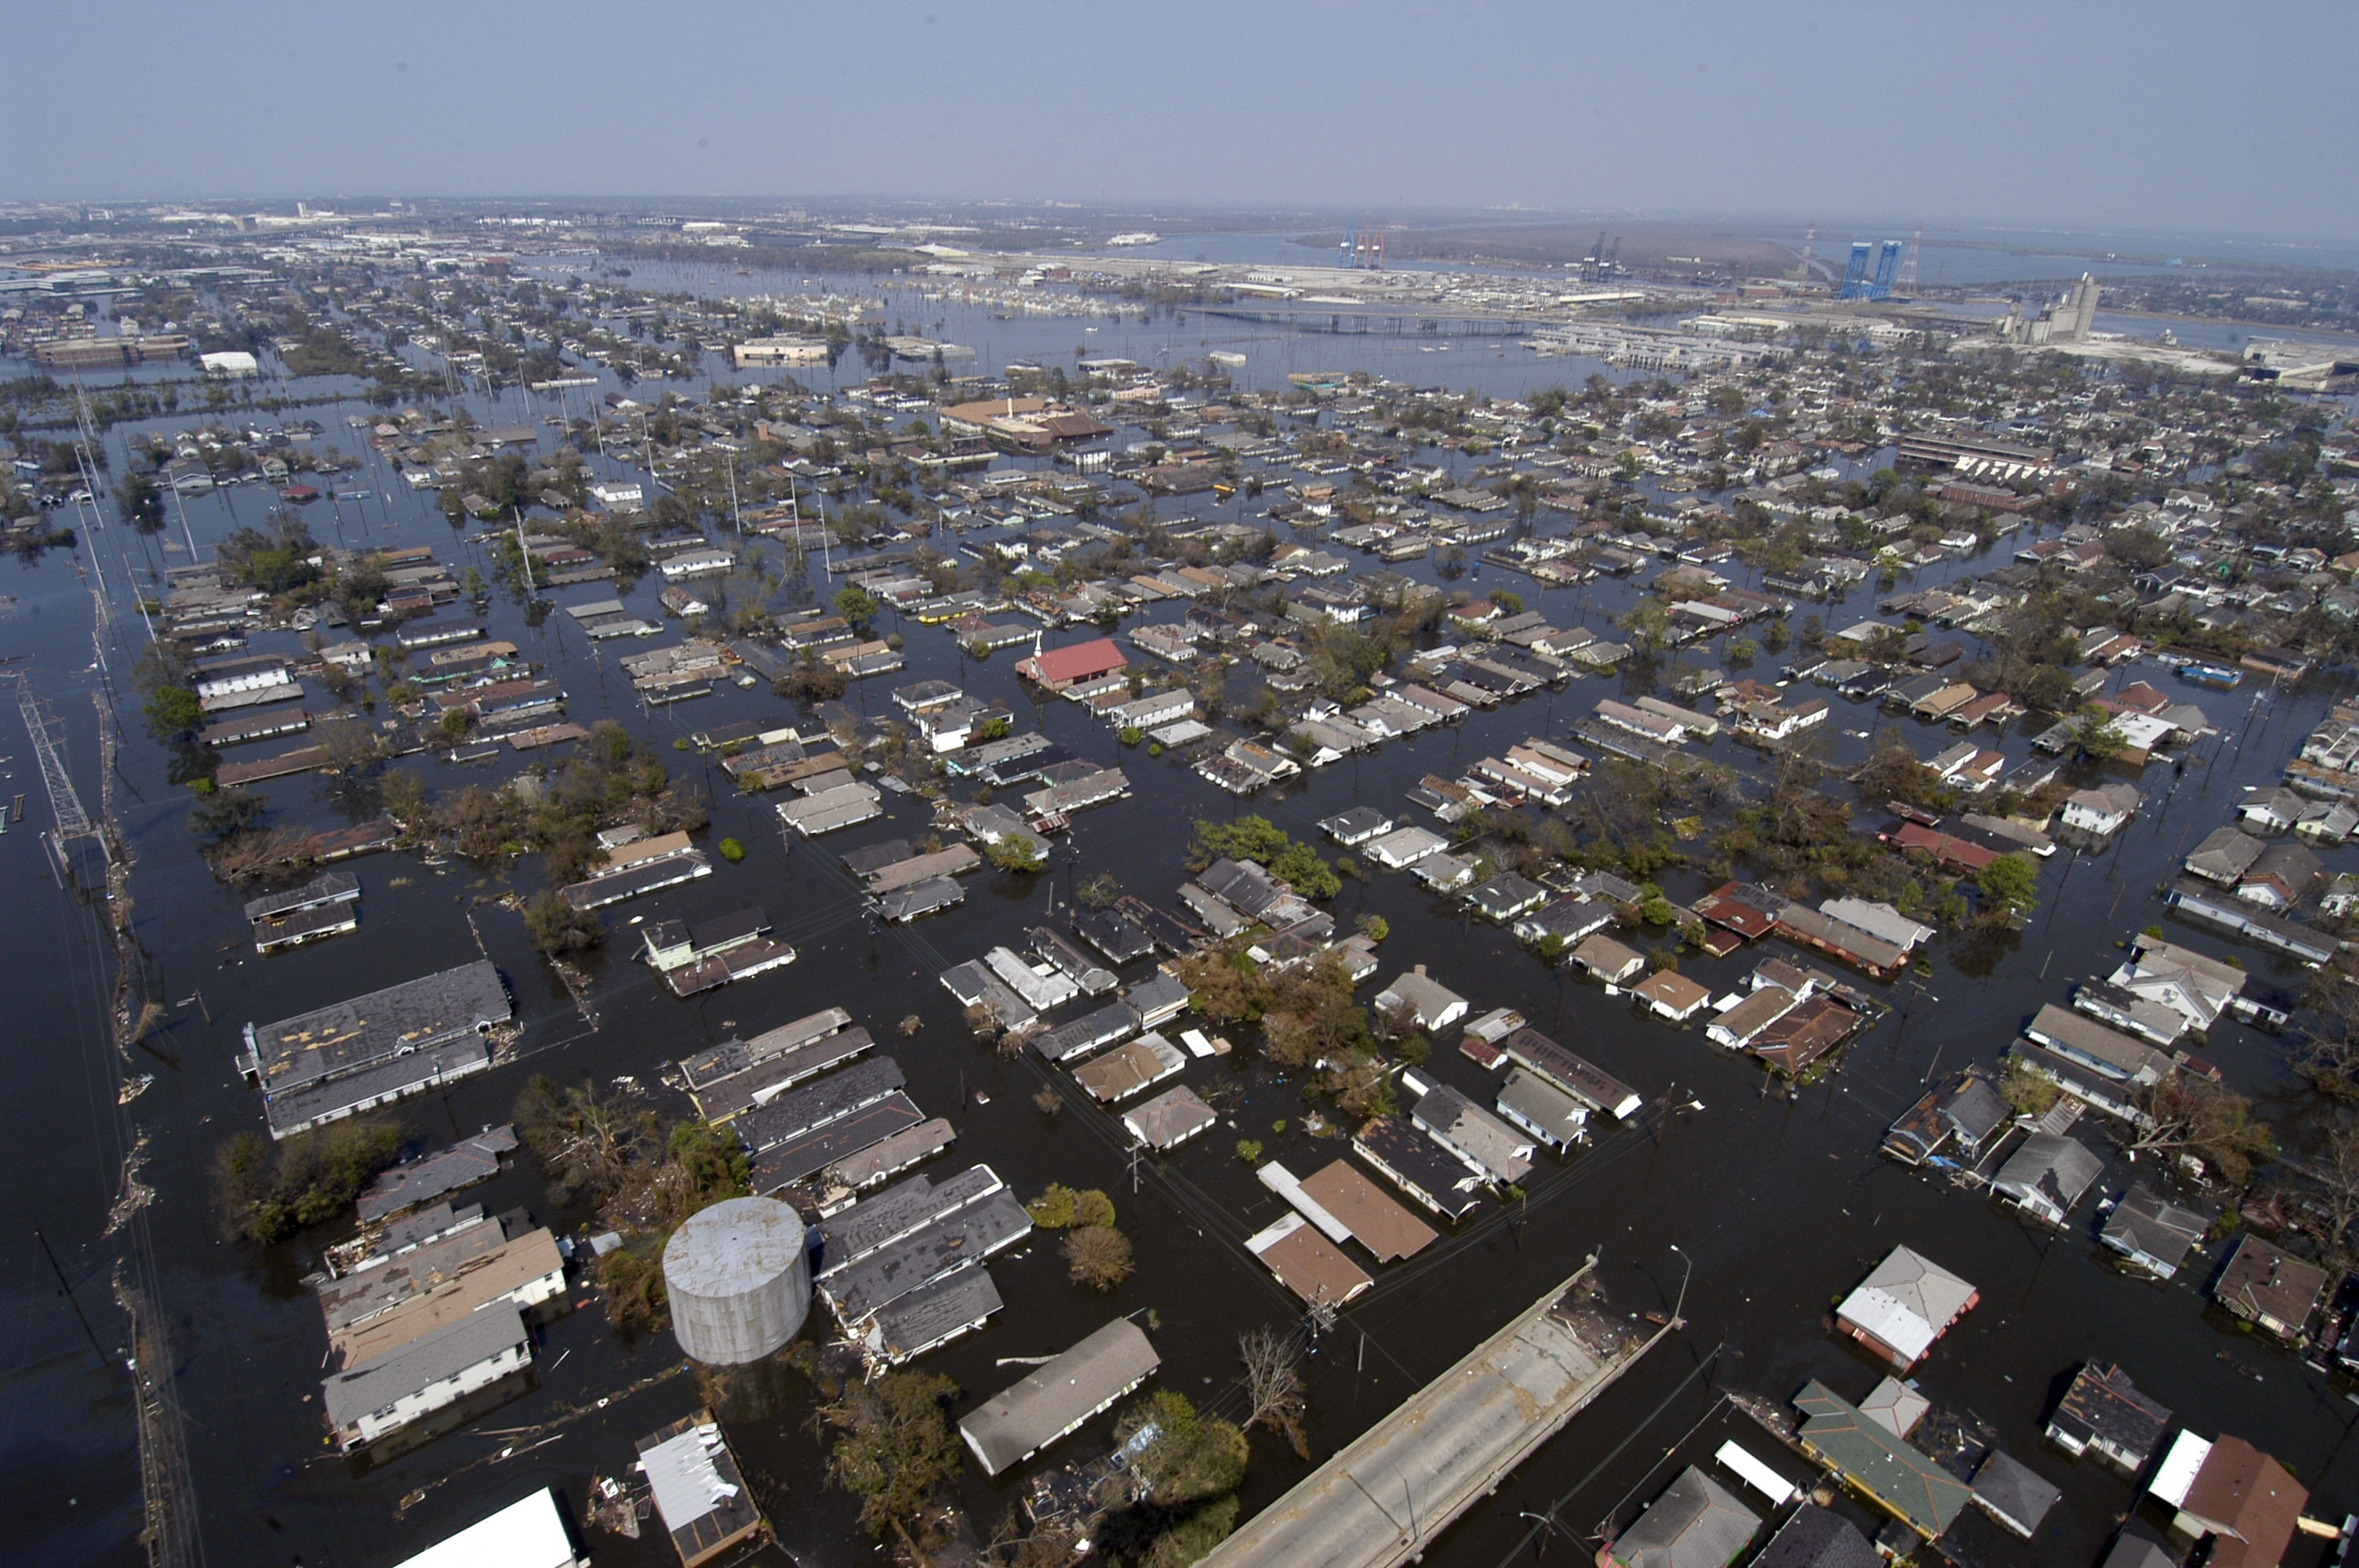 Louisiana to Receive $1.2 Billion Federal Grant for Flood Projects